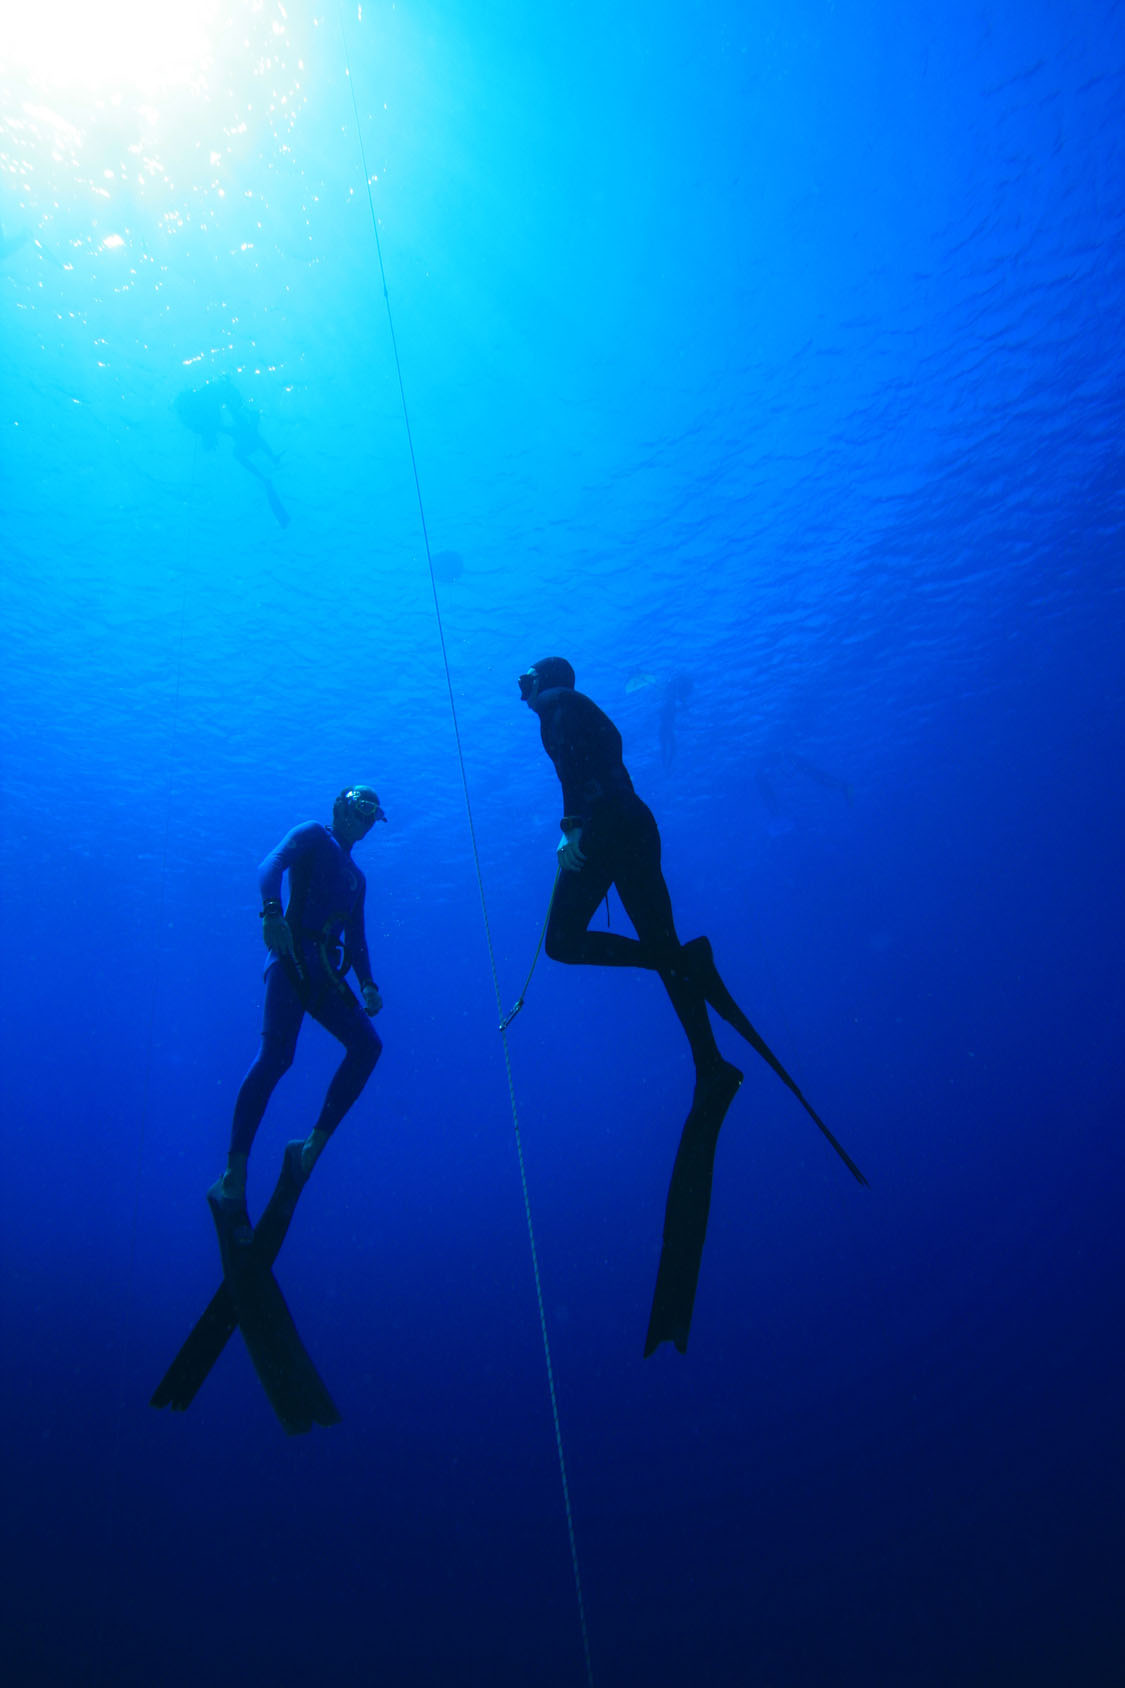 Freediving Club Took The Plunge Offering Free Safety Training